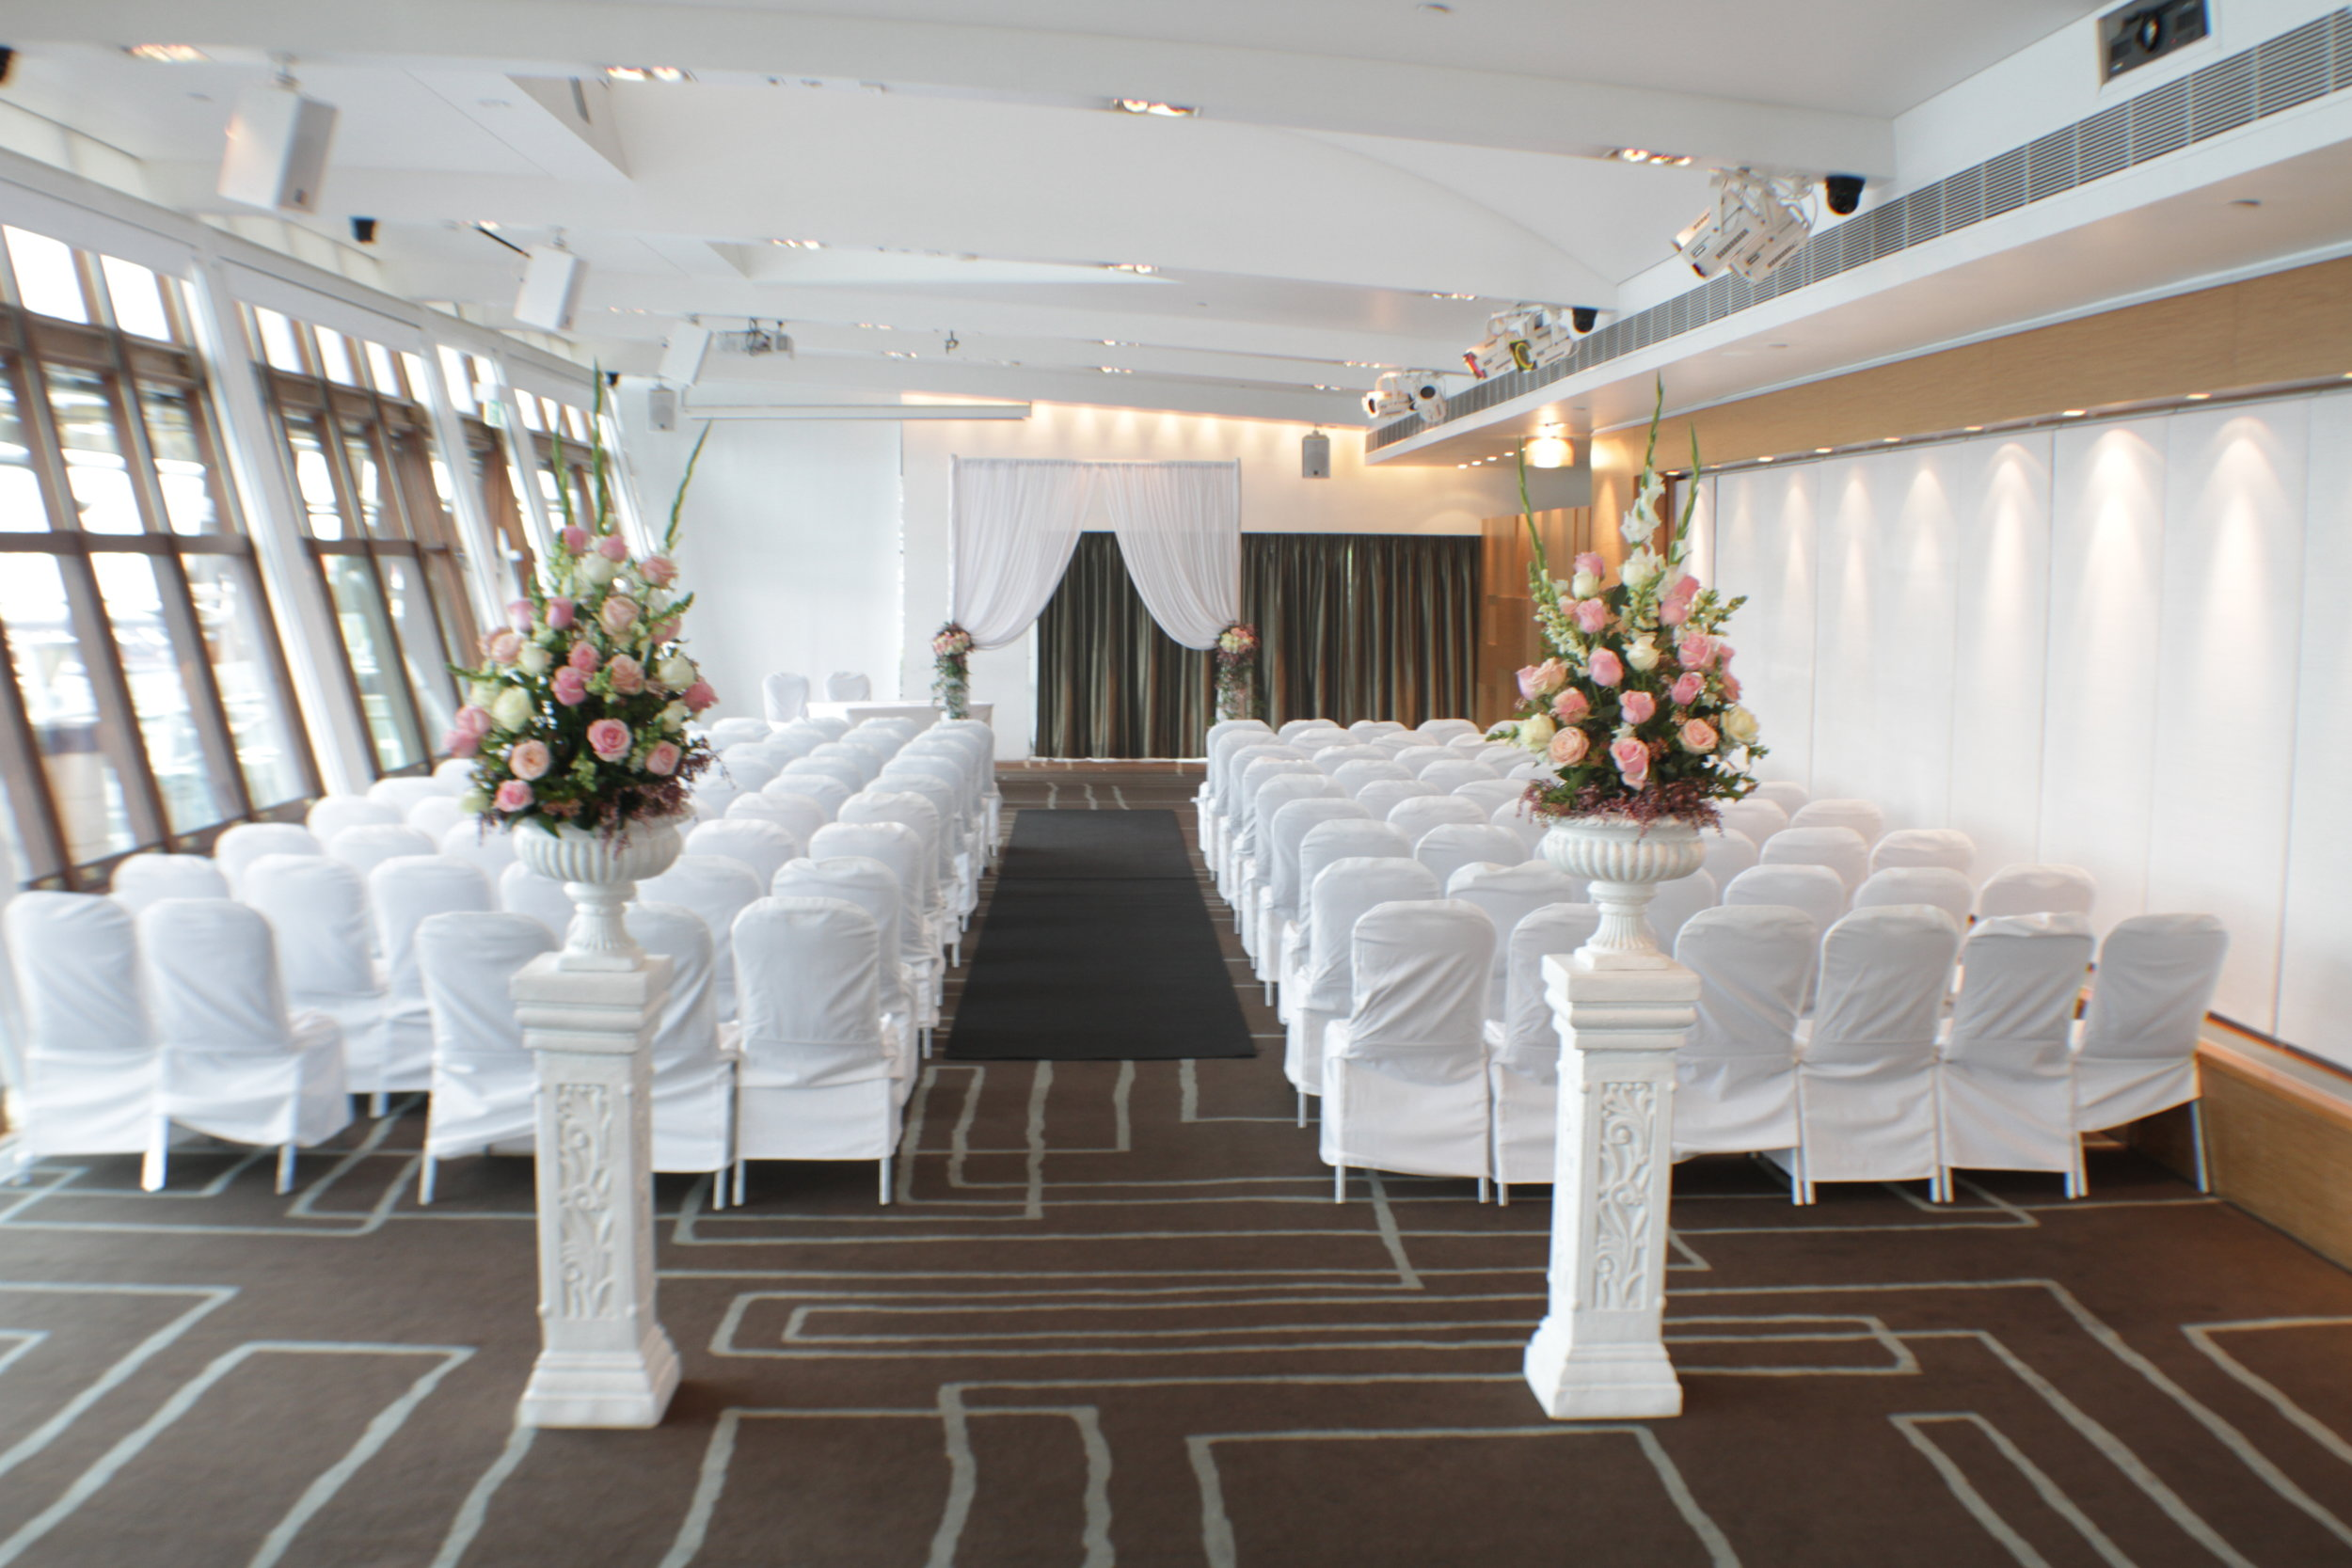 L'Aqua - Terrace Room - Ceremony - Half white chiffon canopy, black carpet and a set of 2 roman urn and pedestals with seasonal fresh flowers.JPG